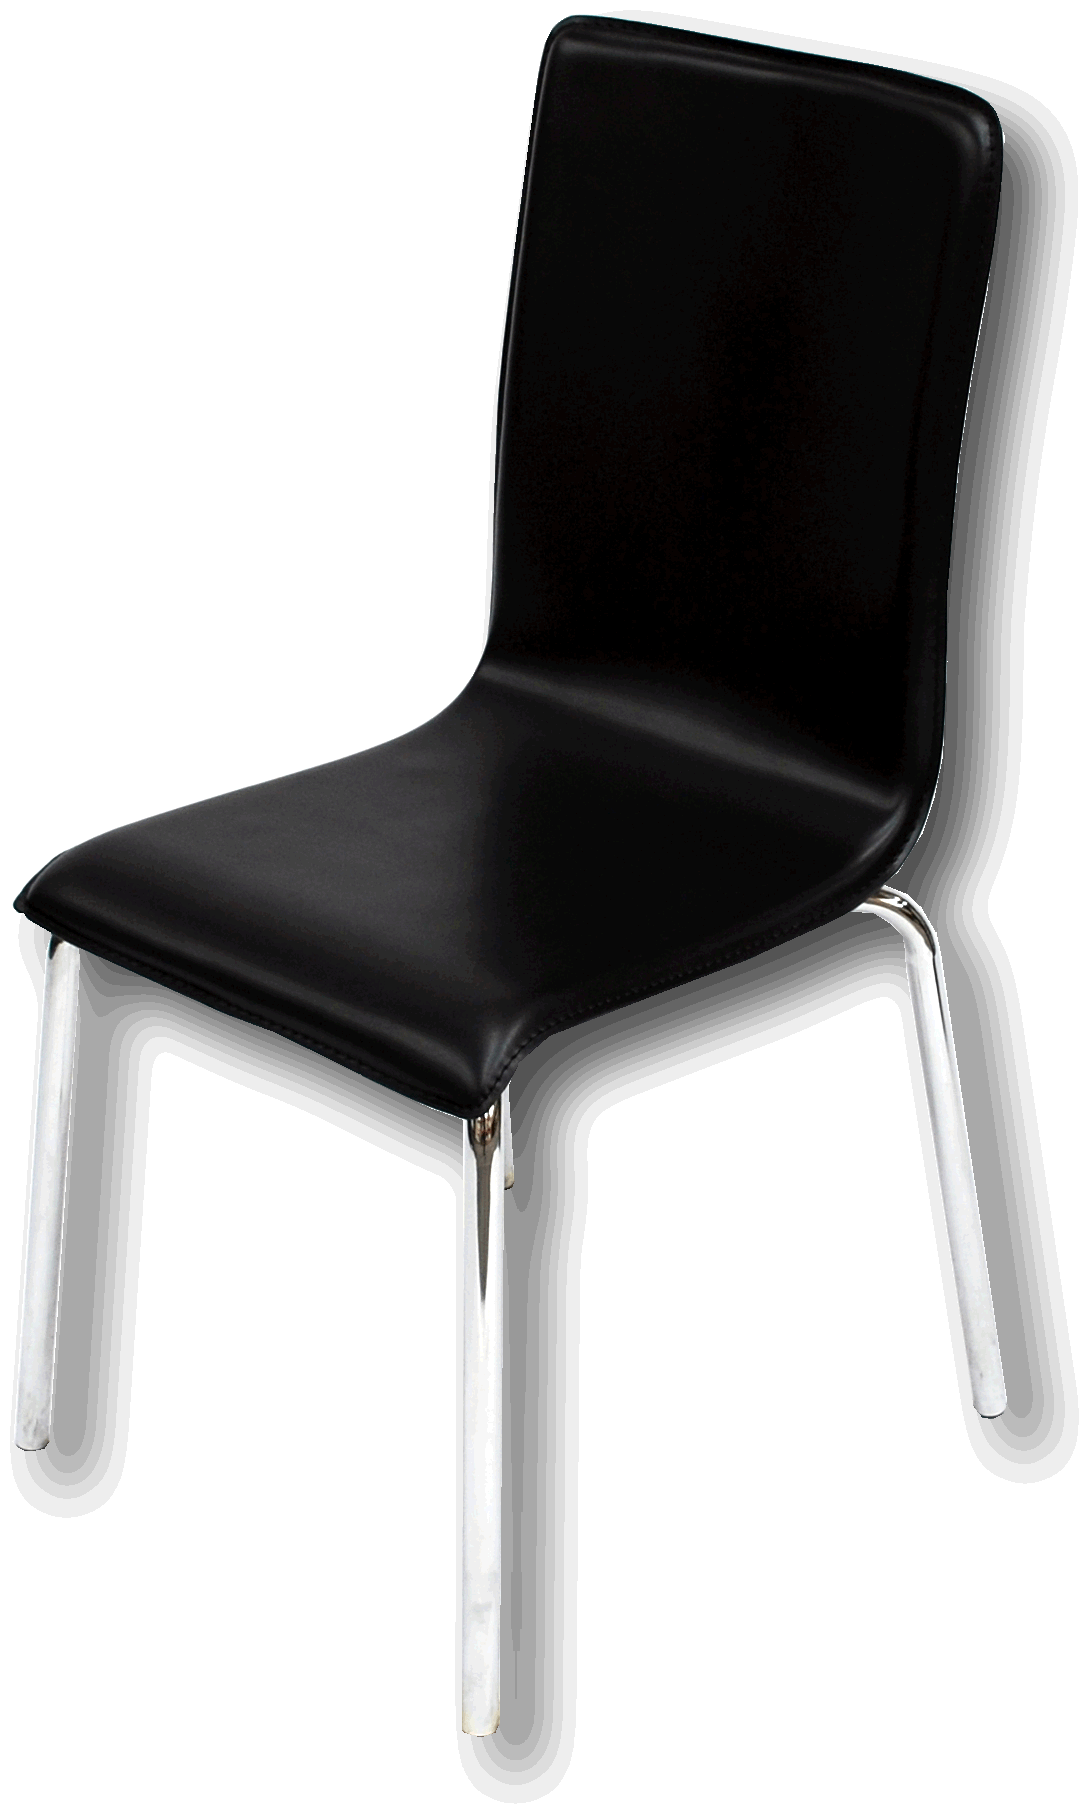 Aesthetic Chair Png image #40523